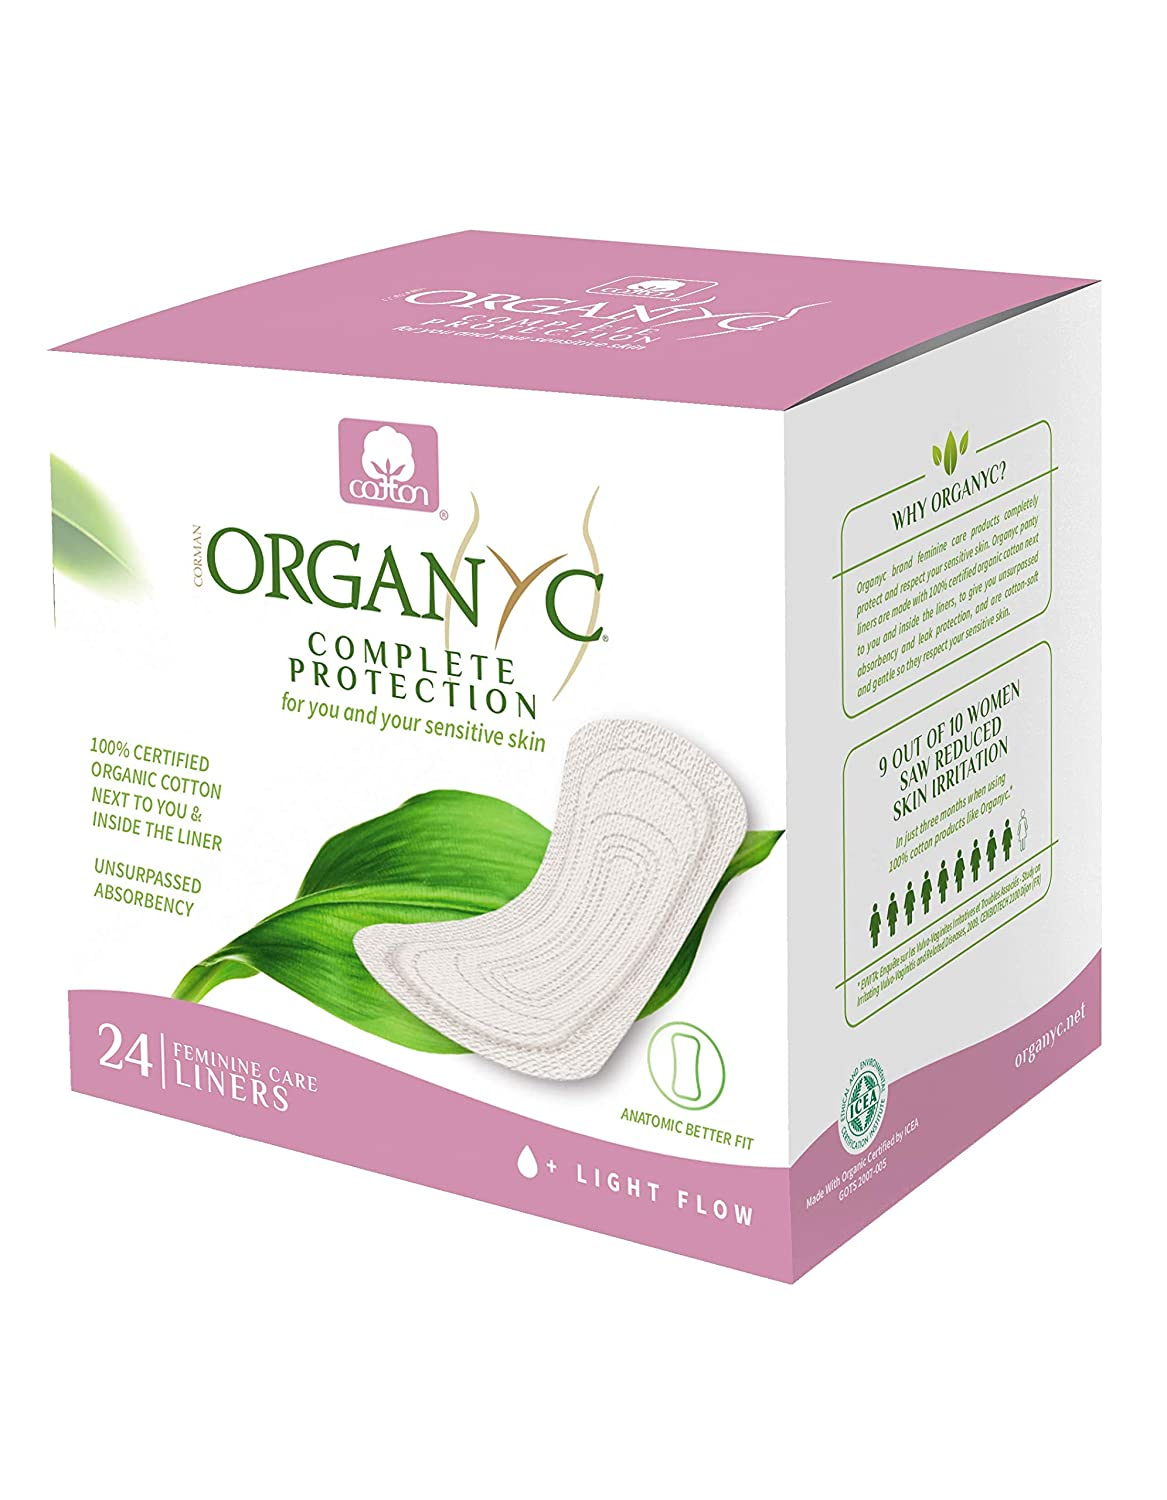 Organyc 100% Organic Cotton Panty Liners for Sensitive Skin, 24 Count